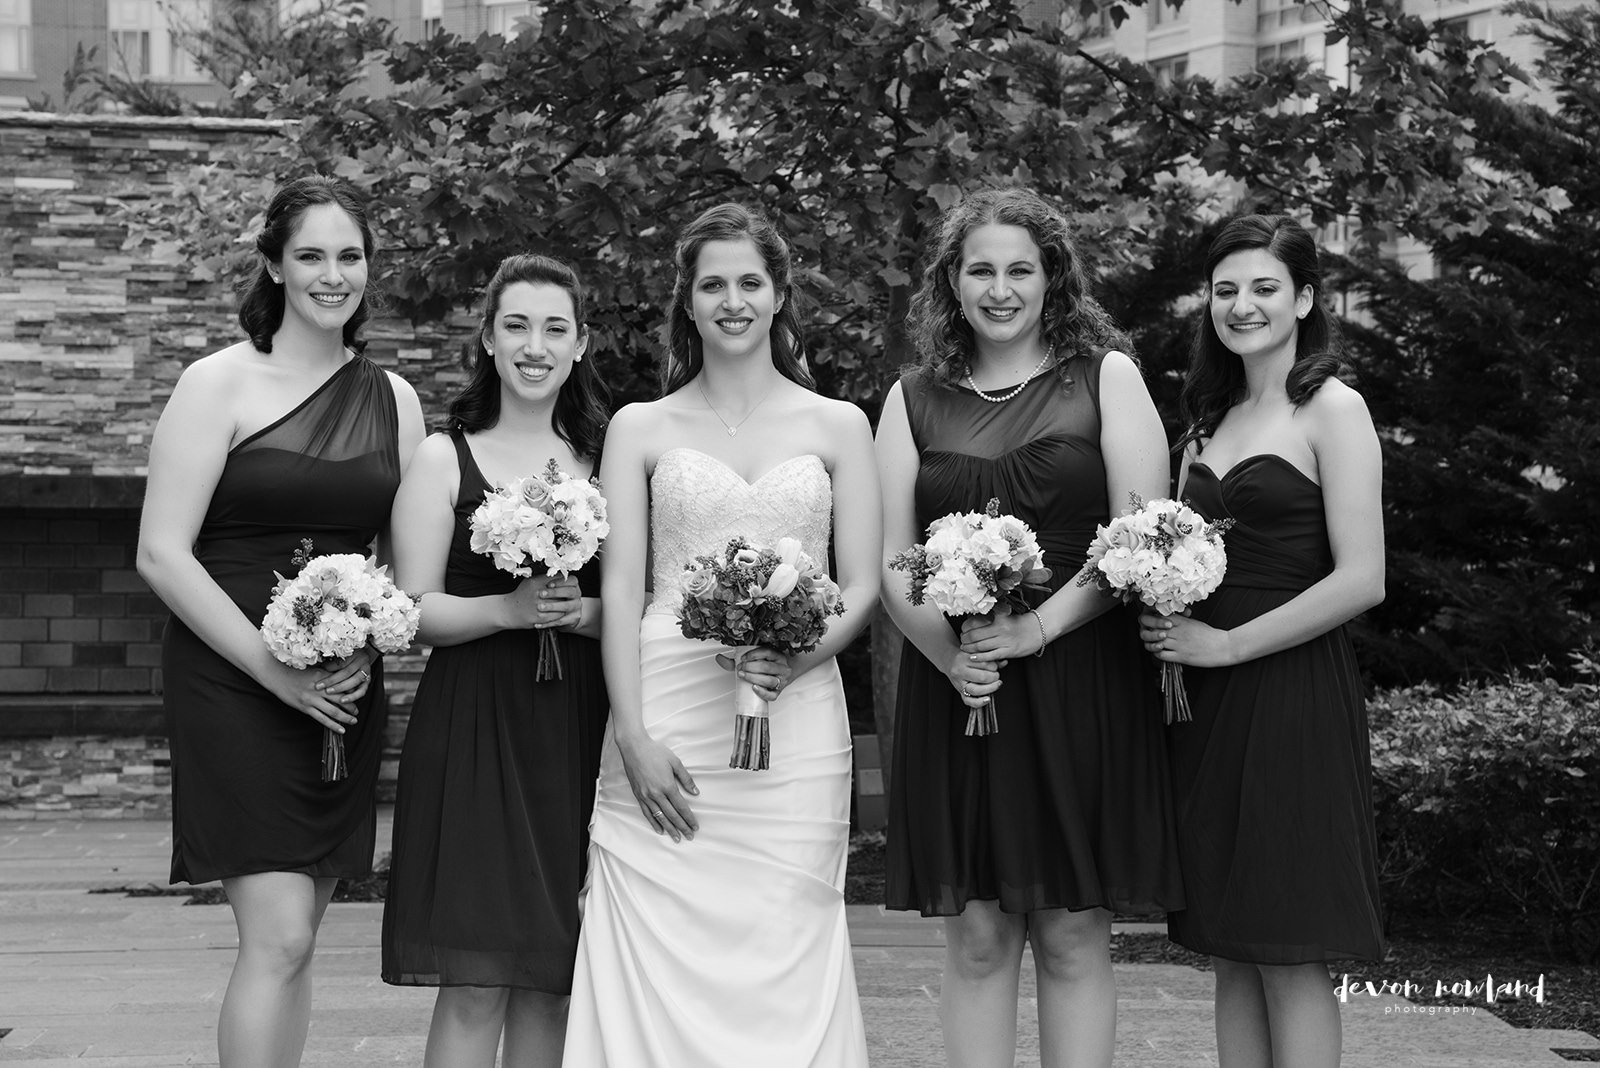 RJ-wedding-Four-Seasons-Baltimore-Devon-Rowland-Photography-2017-May07-6286_bw.jpg